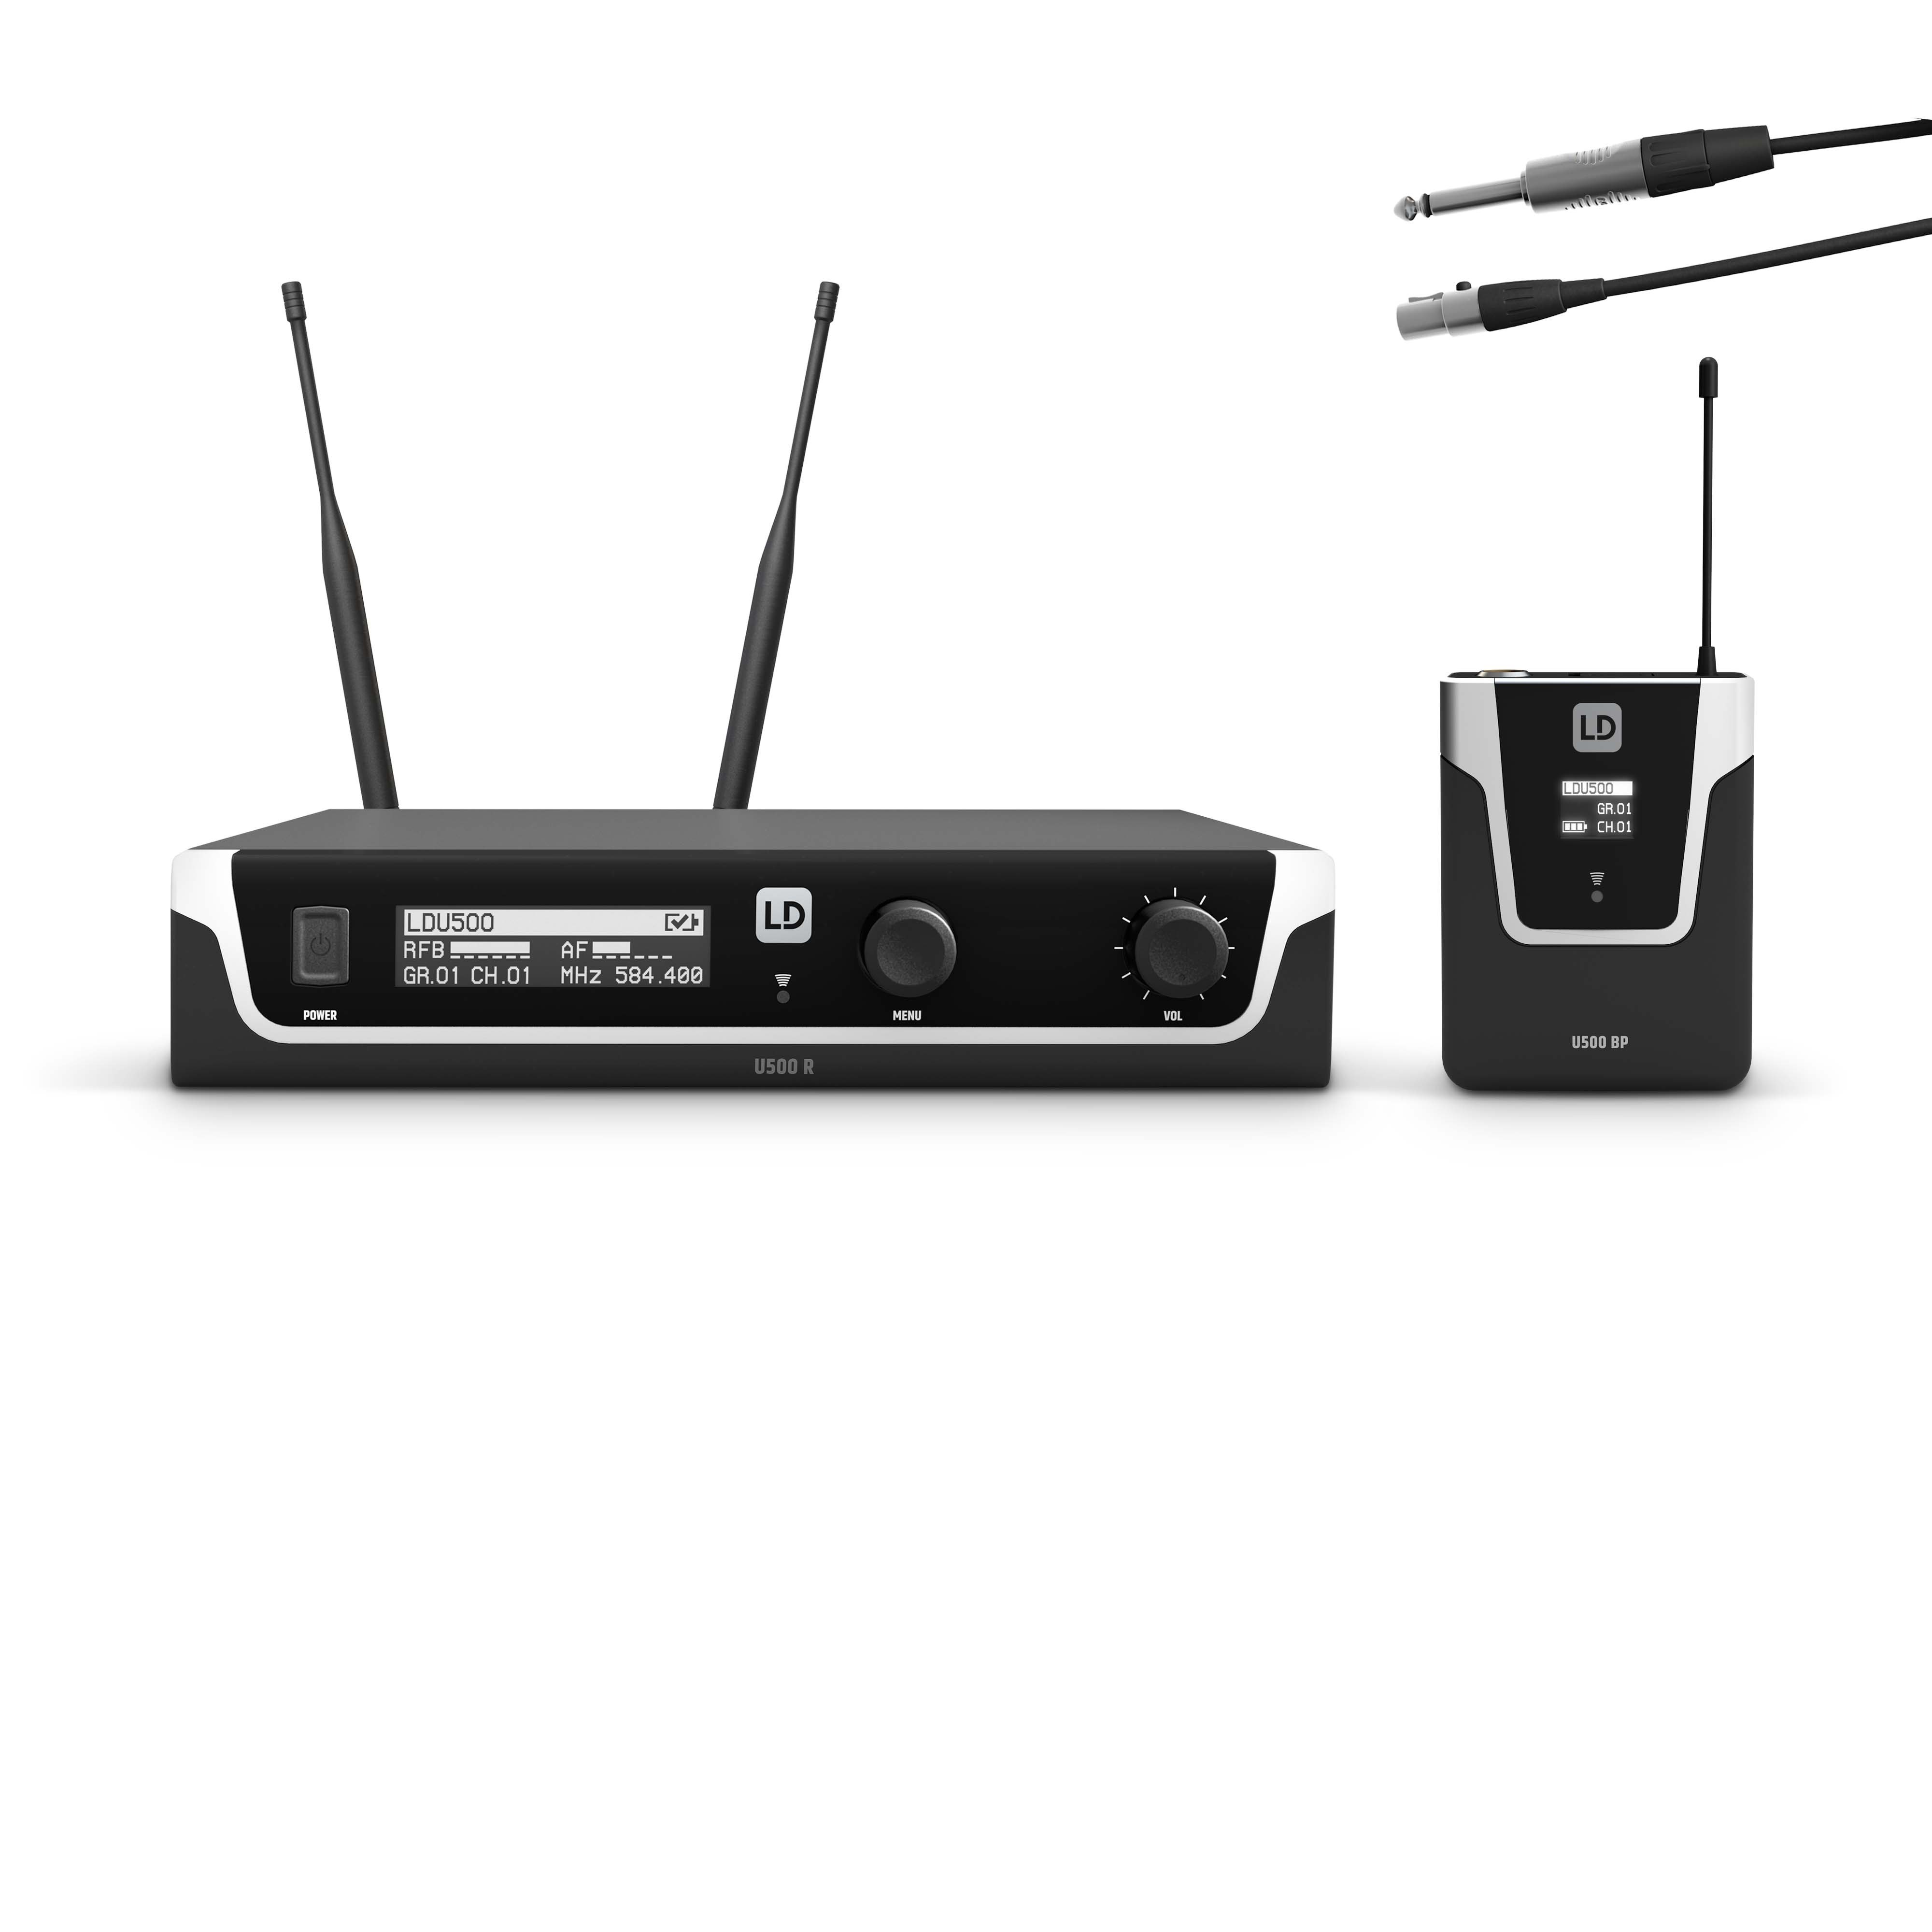 U505 BPG Wireless Microphone System with Bodypack and Guitar Cable